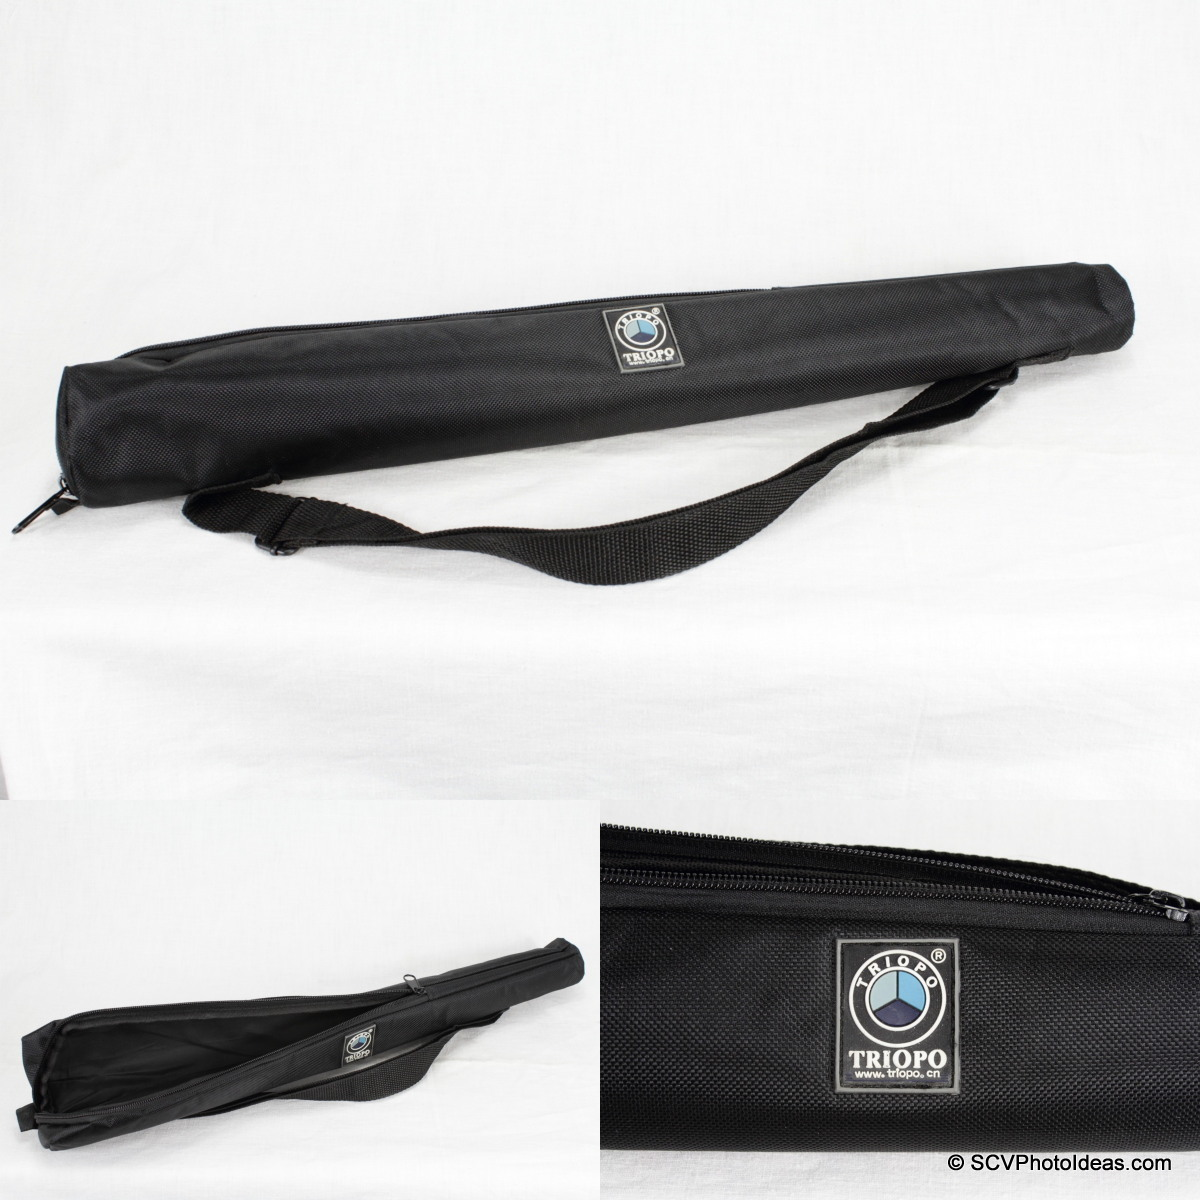 Triopo GL-70 CF Monopod - carrying case details